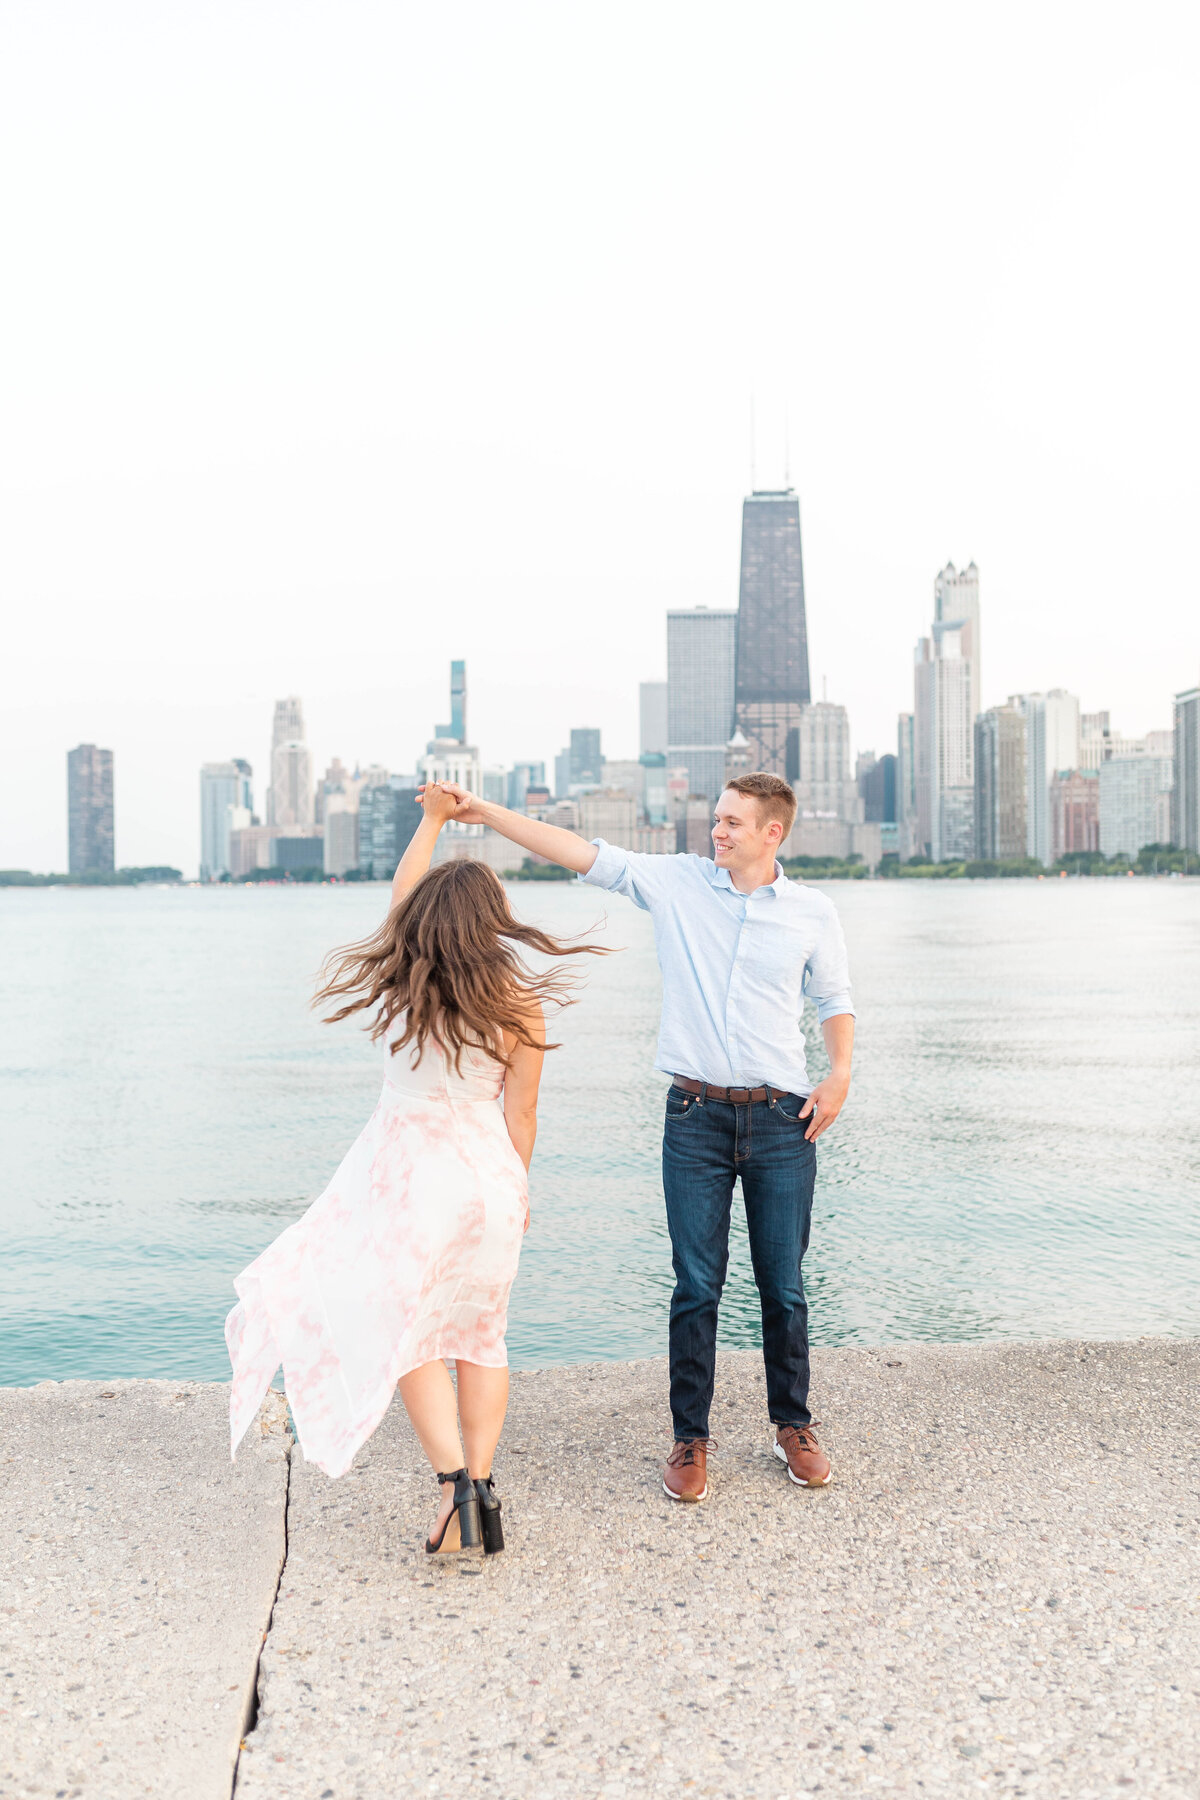 North Avenue Beach Engagement Photos60035